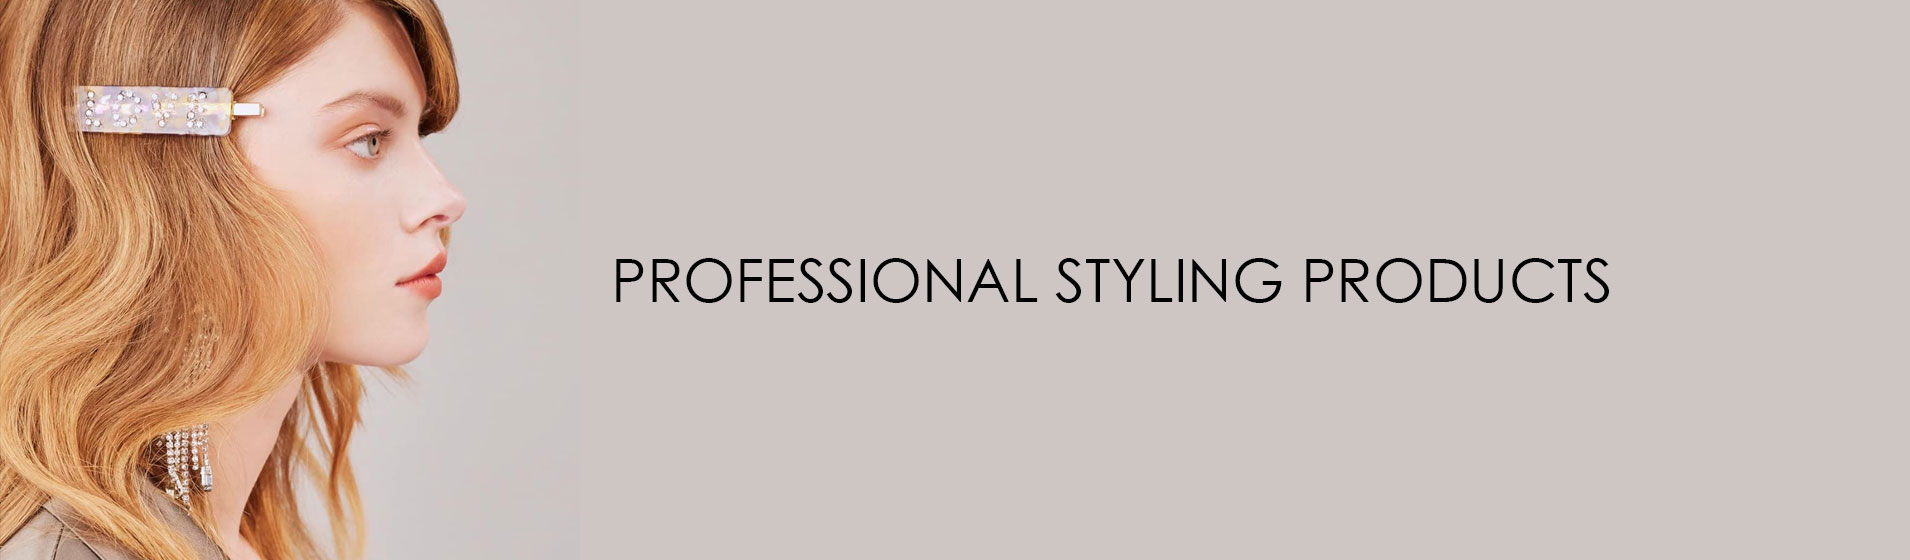 PROFESSIONAL STYLING PRODUCTS at elements hair salon in Oxted, Surrey